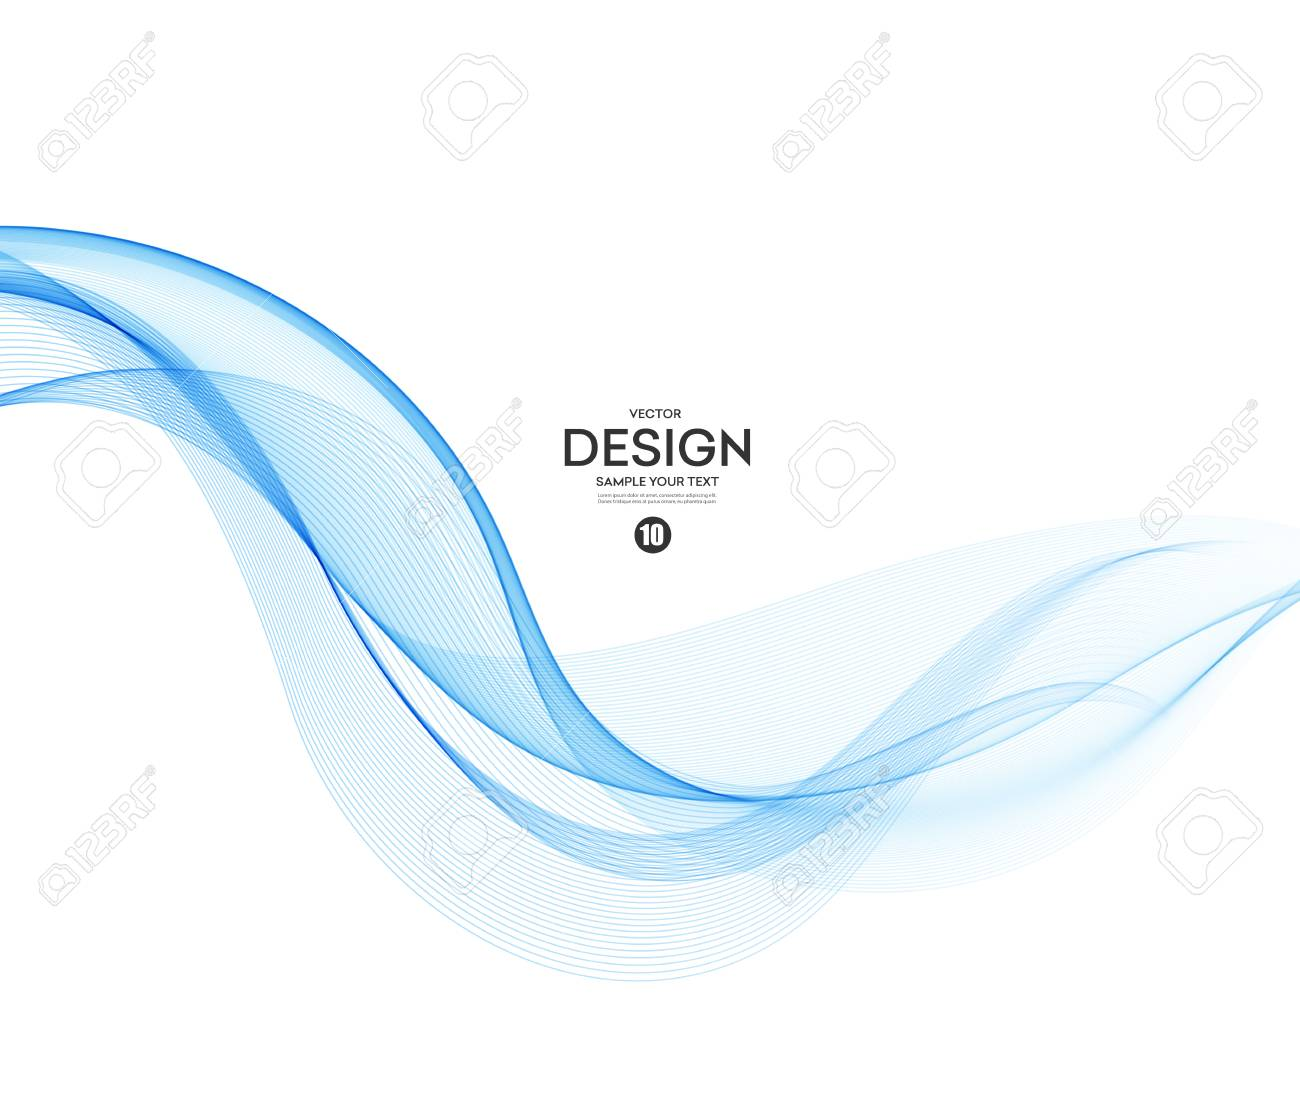 Abstract vector background, blue wavy - 78339853